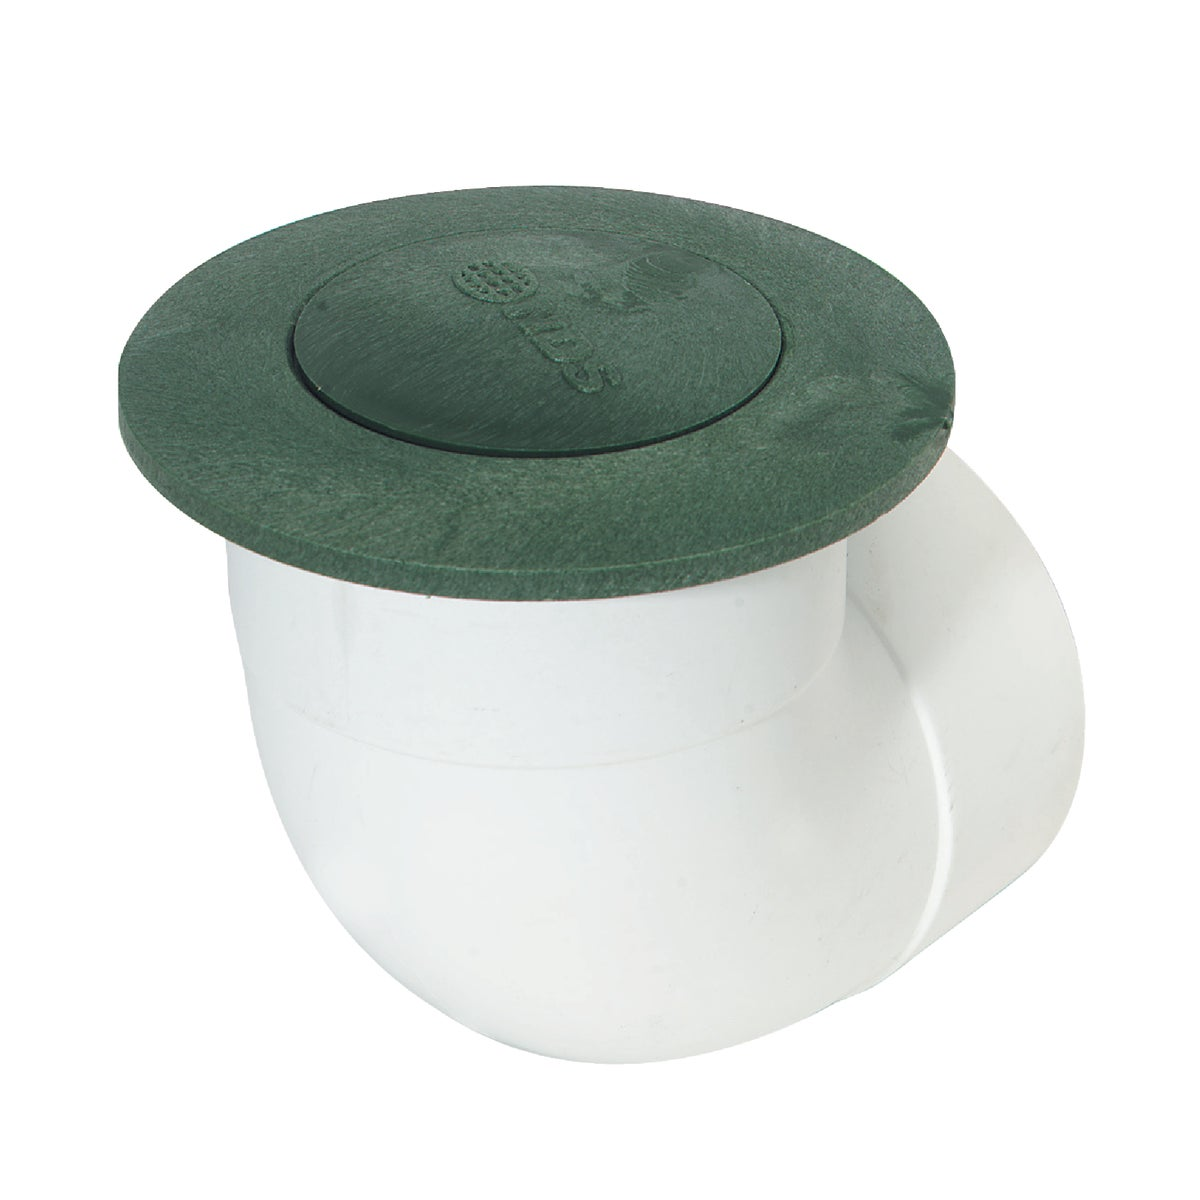 "4"" DRAINAGE EMITTER - 422 by National Diversified"